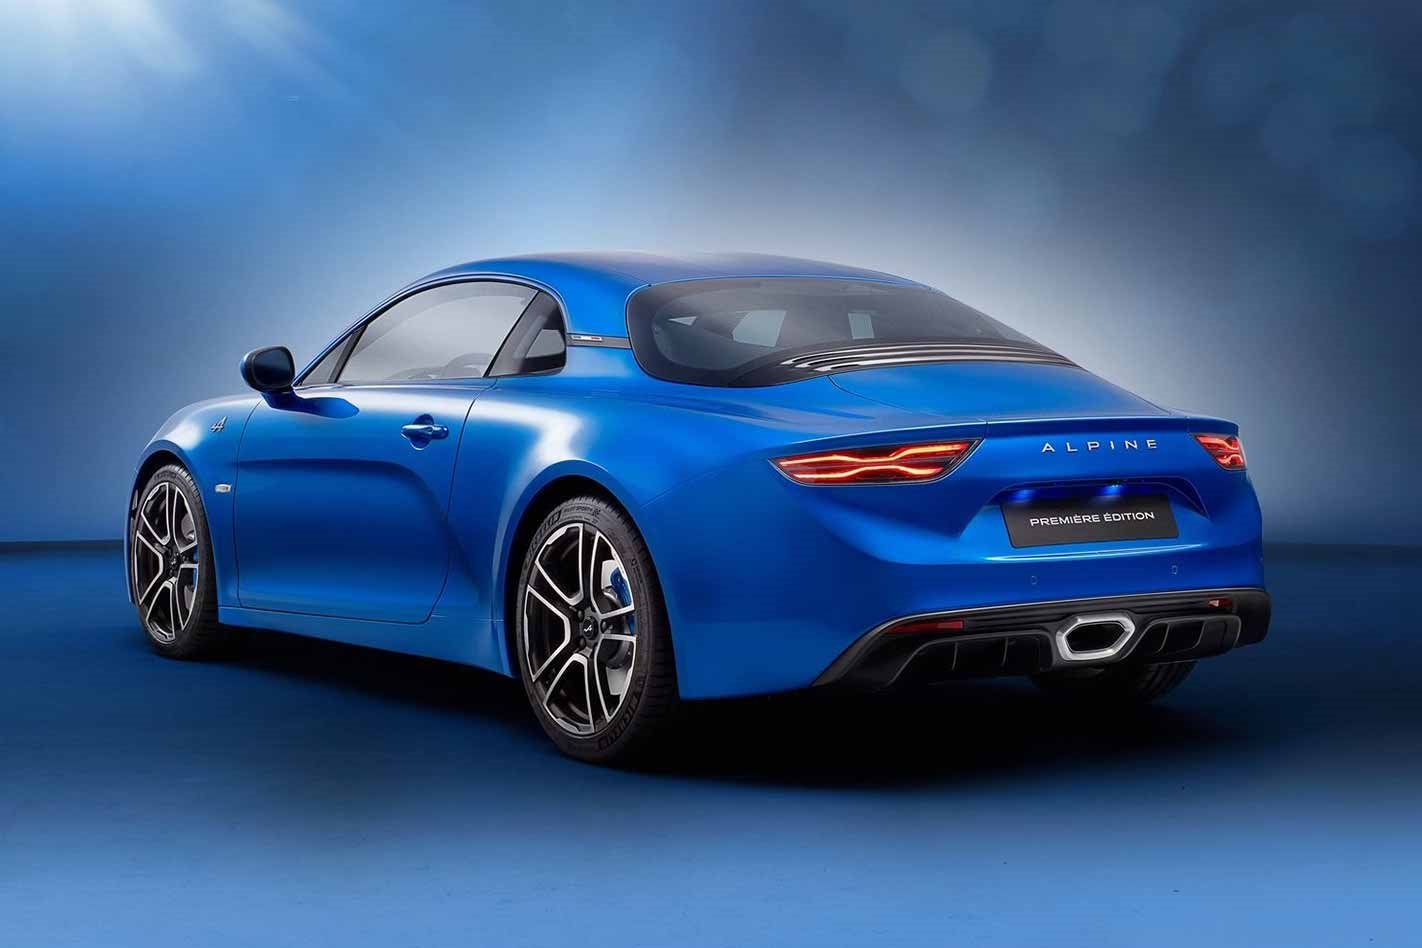 2018 Alpine A110 rear